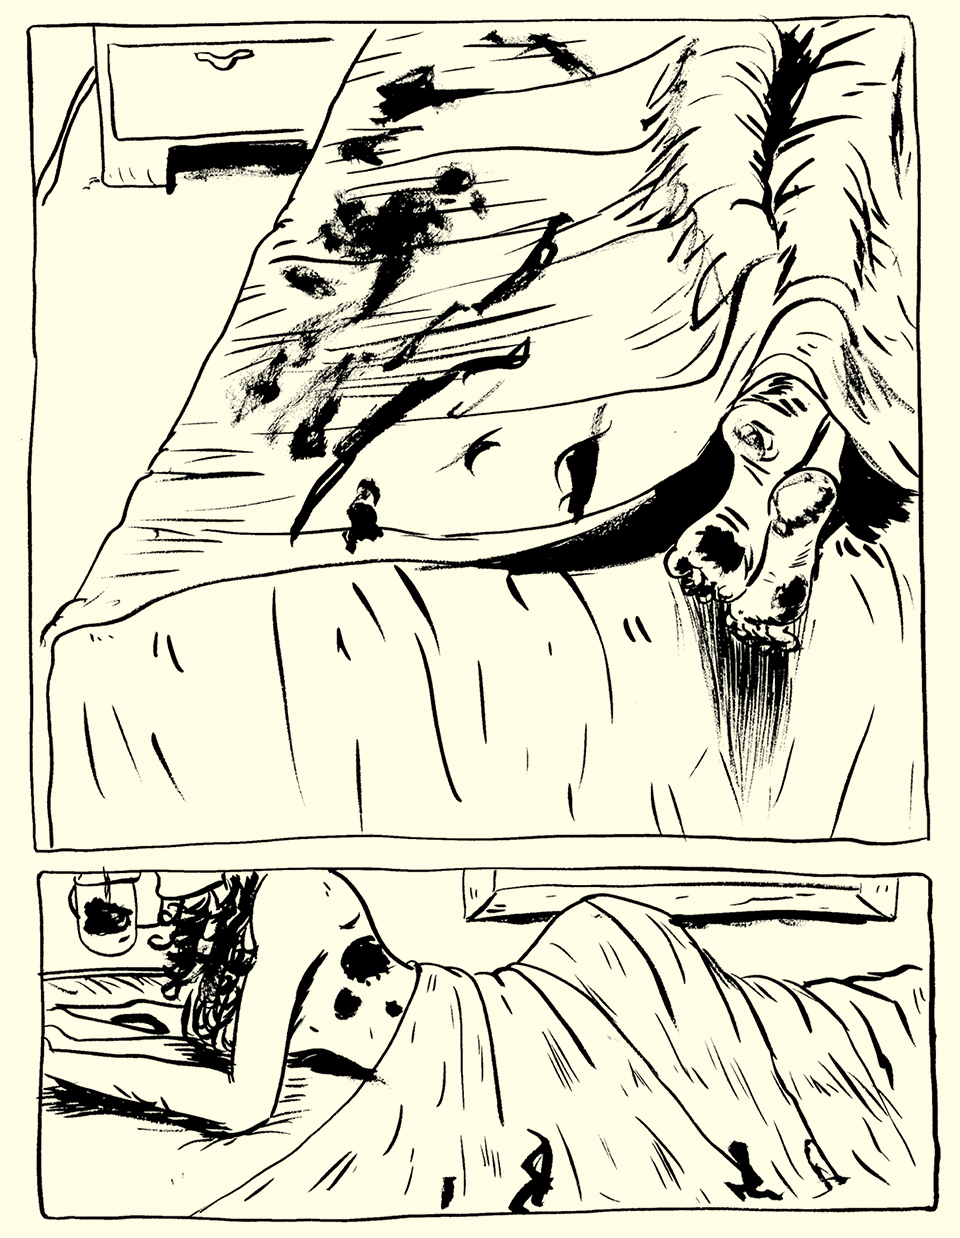 Page 4 by Roho with inks by Jamie Hibdon